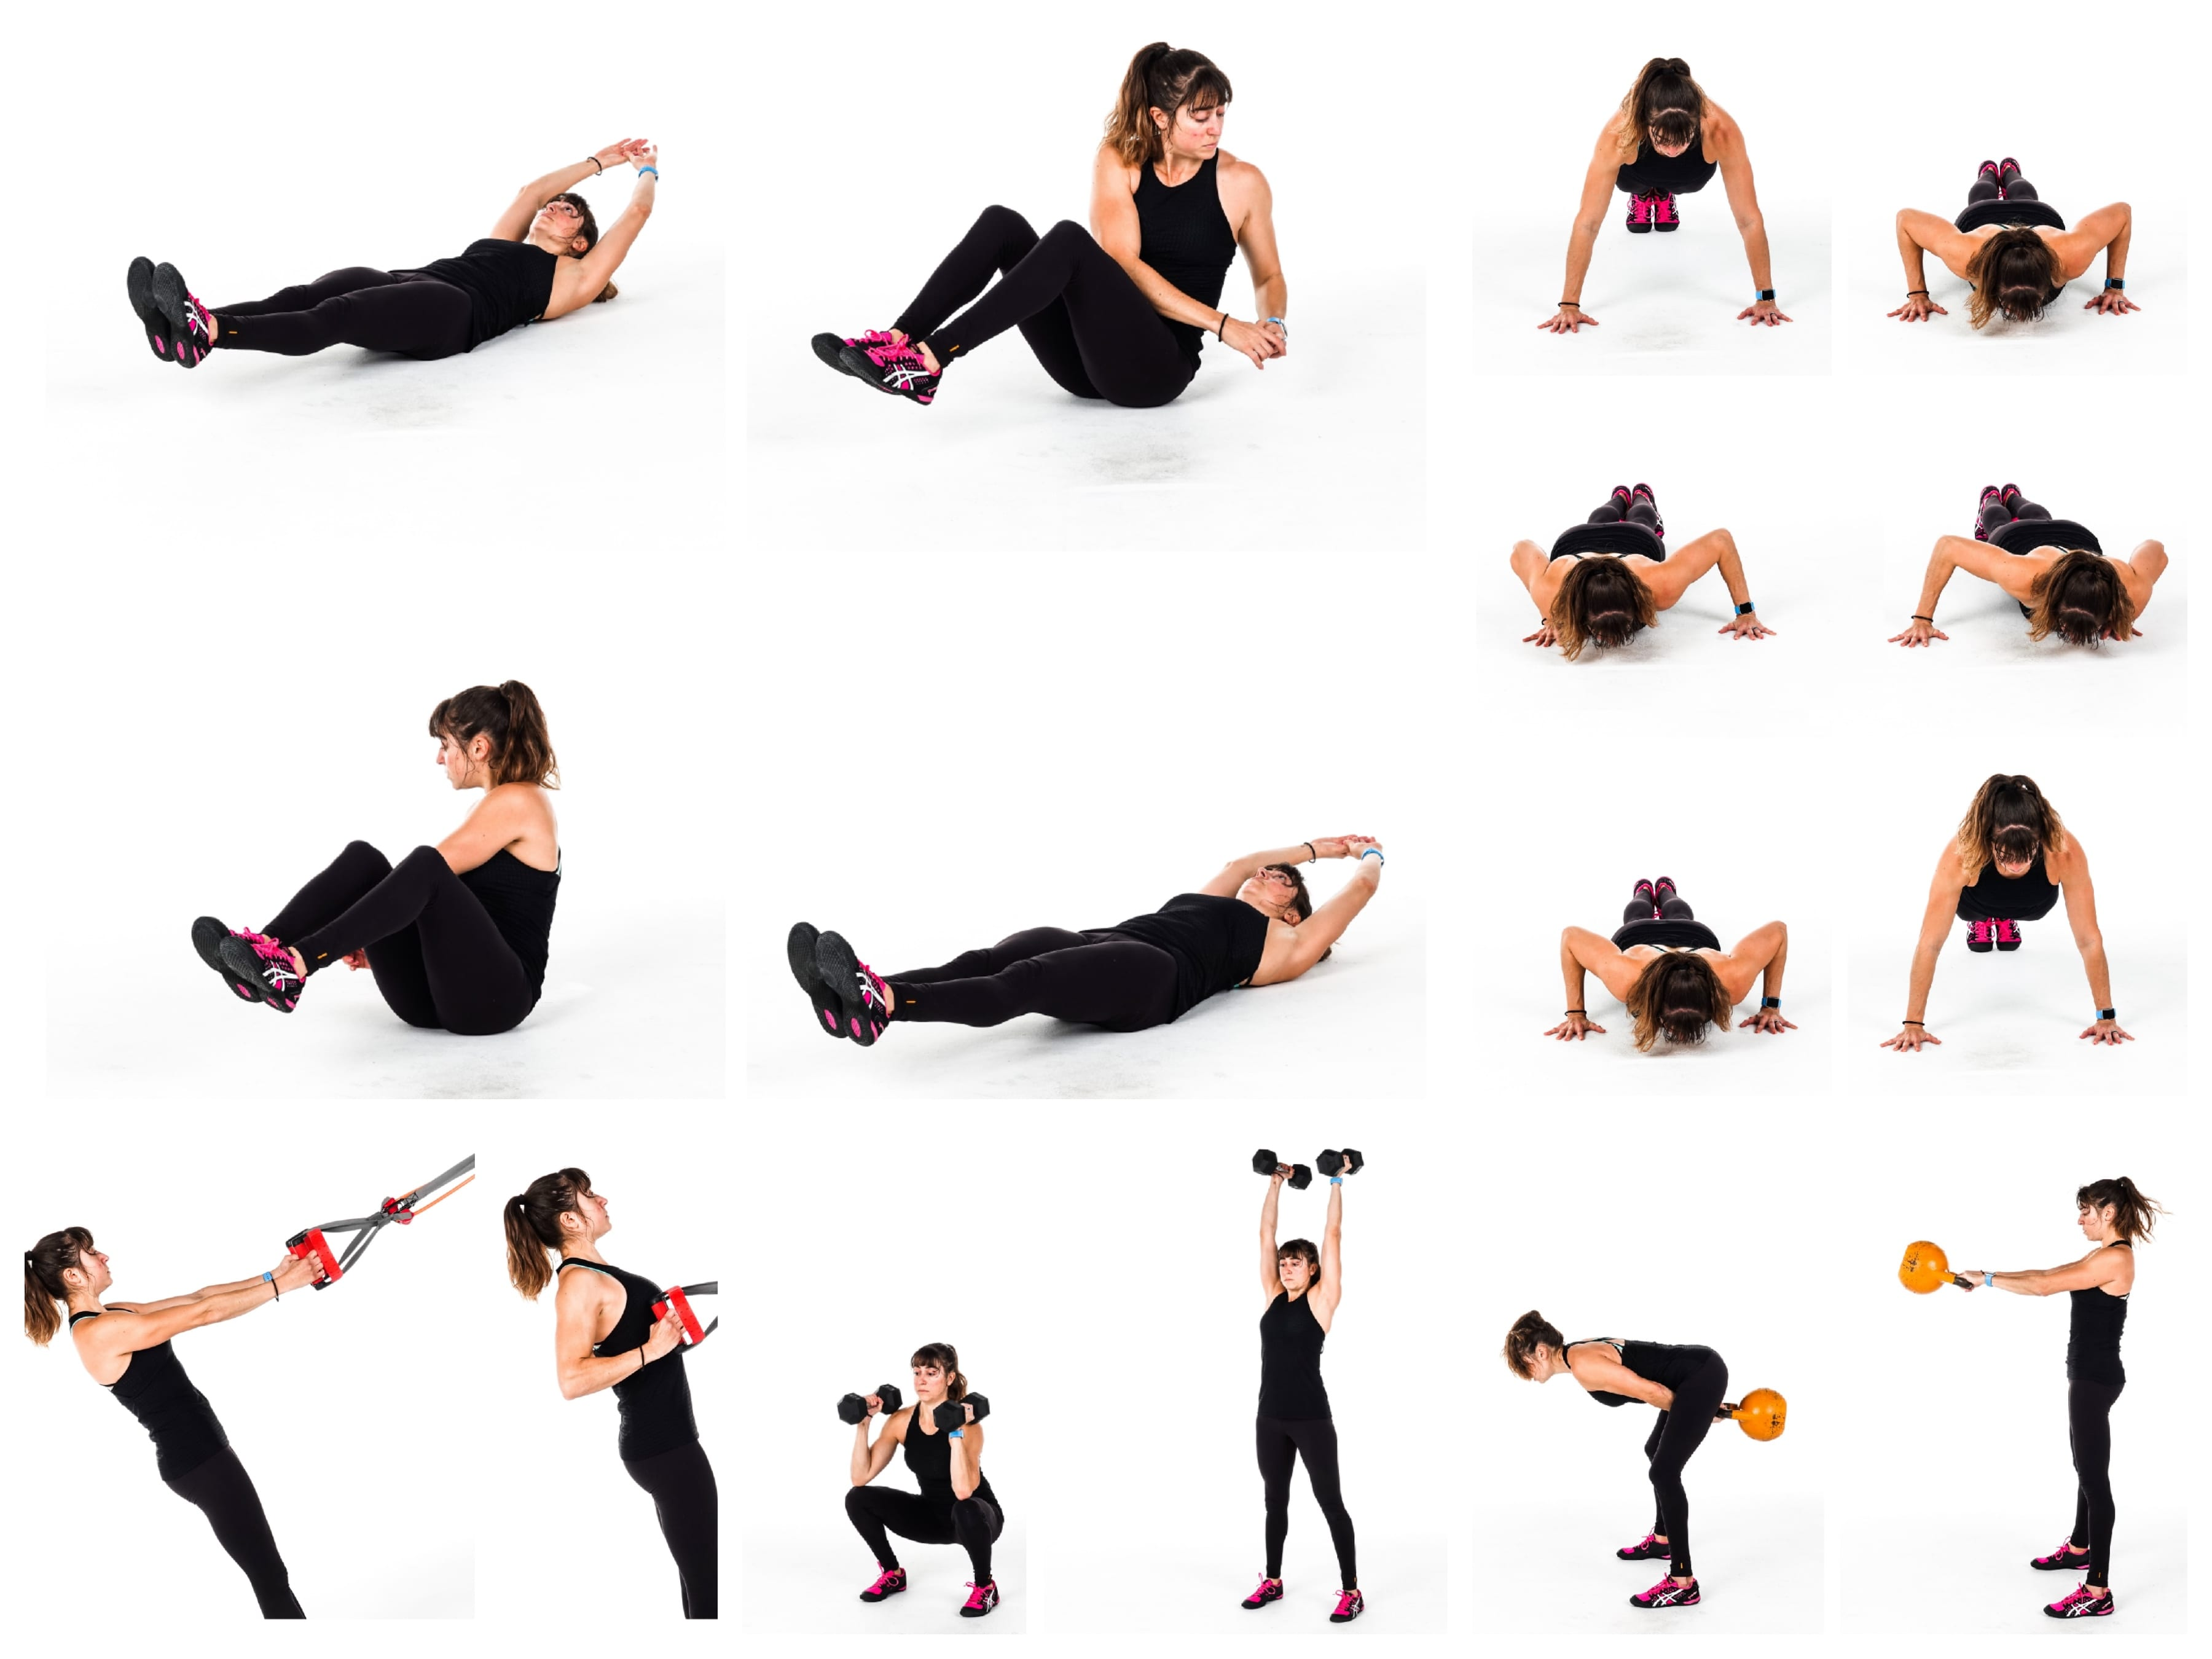 The Relay Cardio Workout